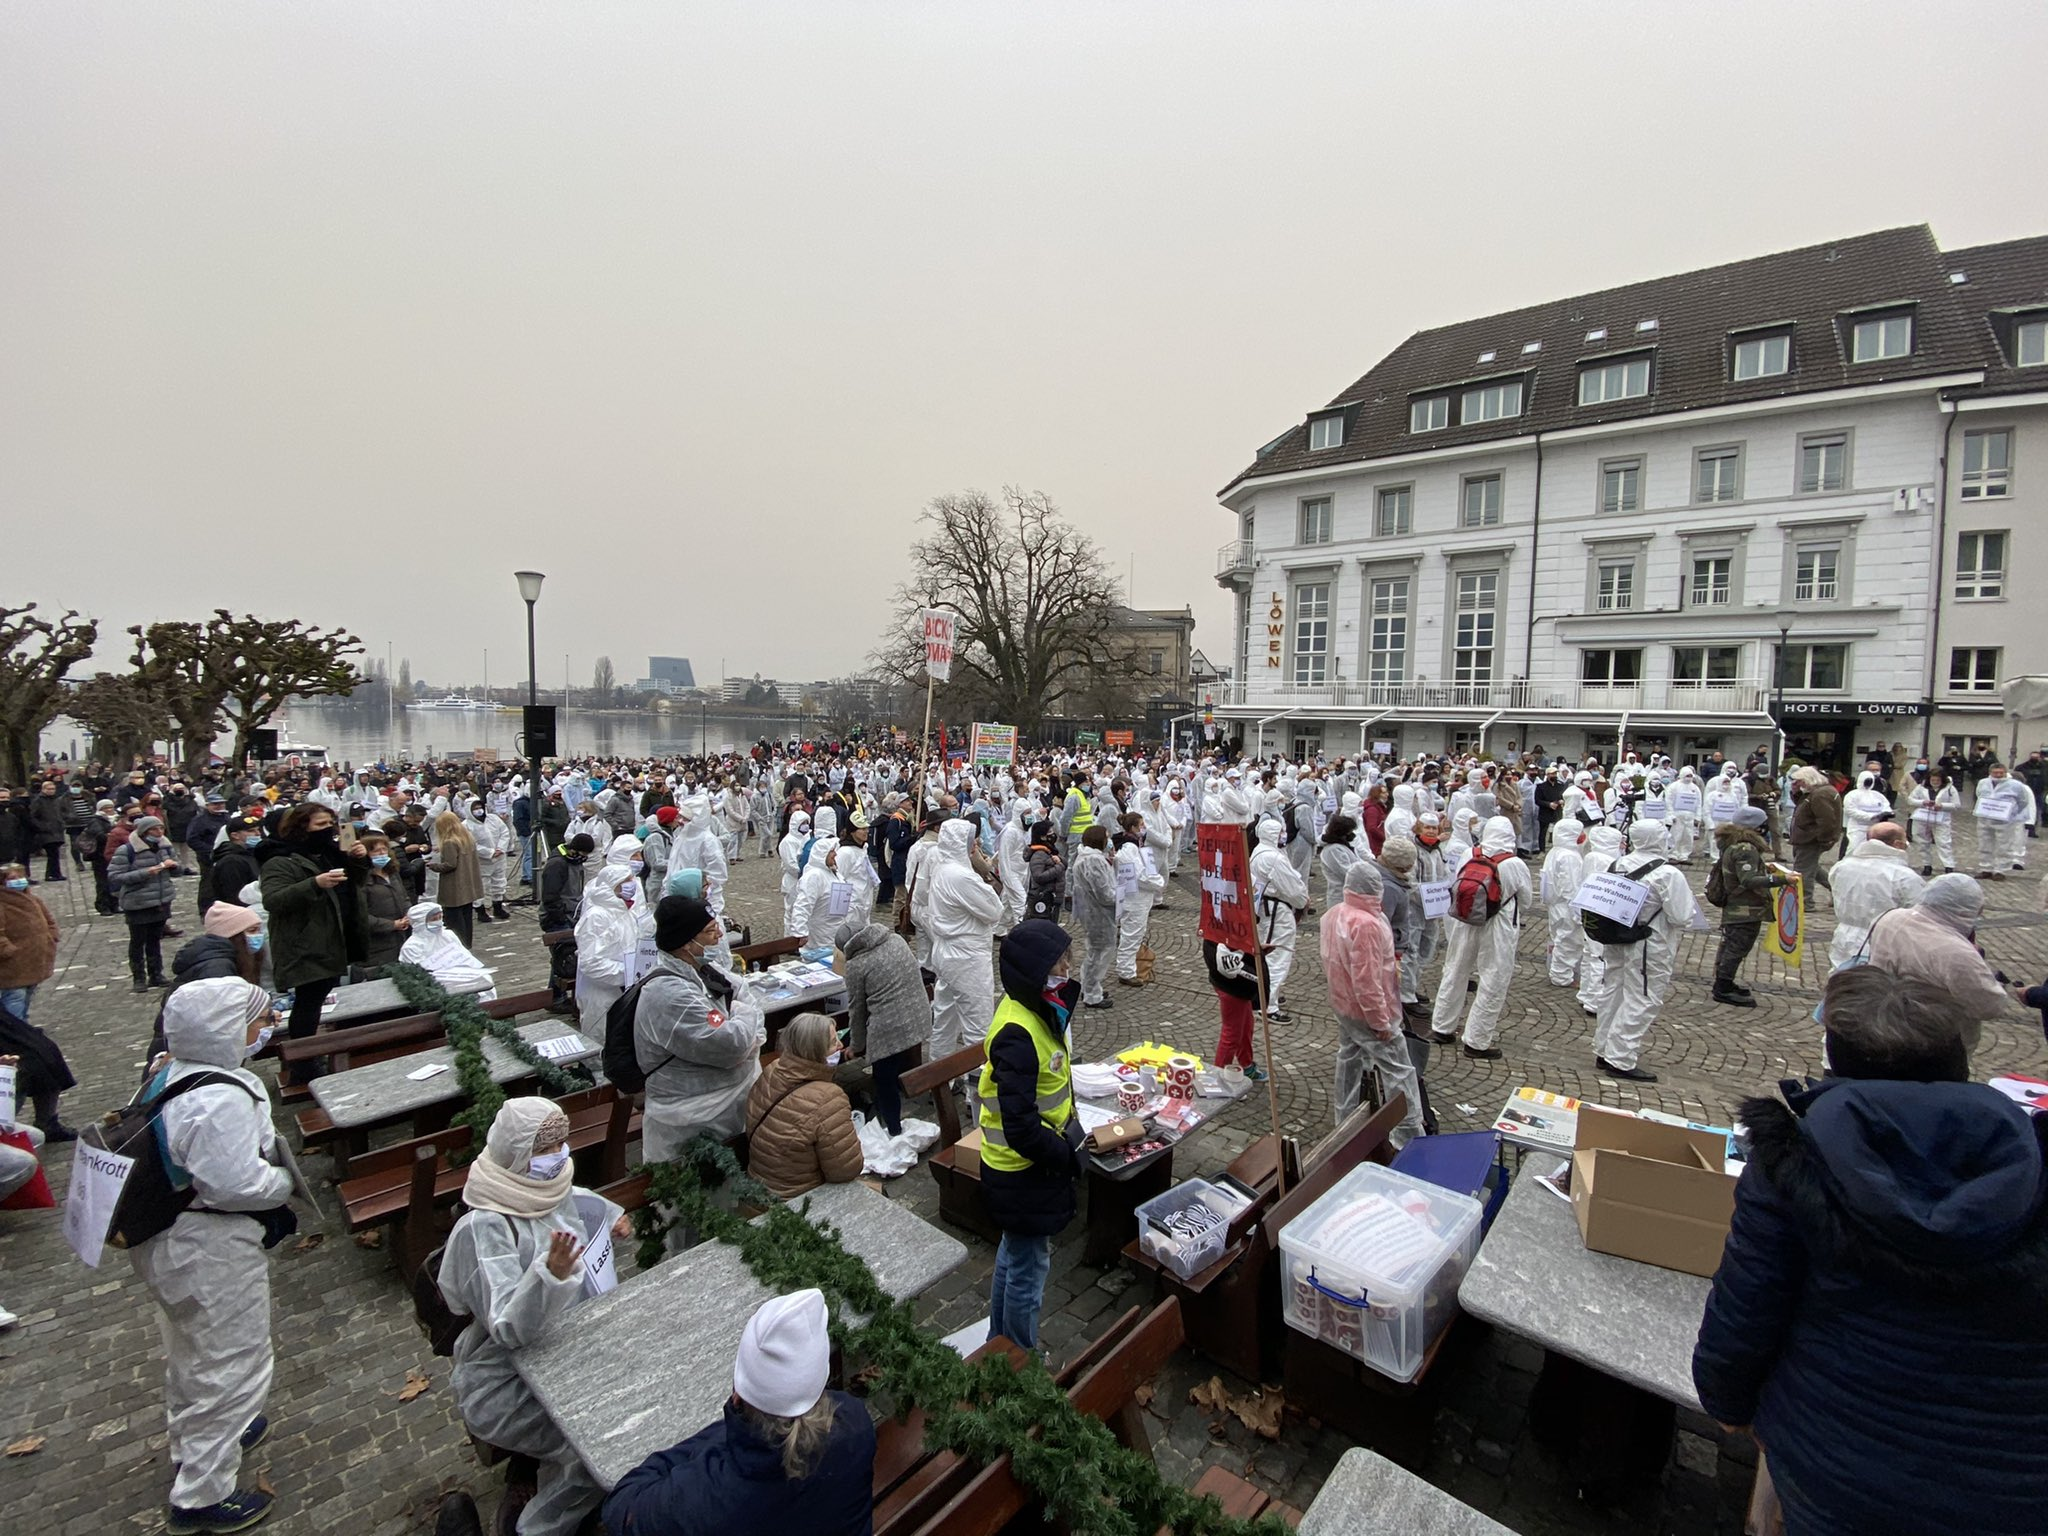 Hundreds protest Covid restrictions in Switzerland